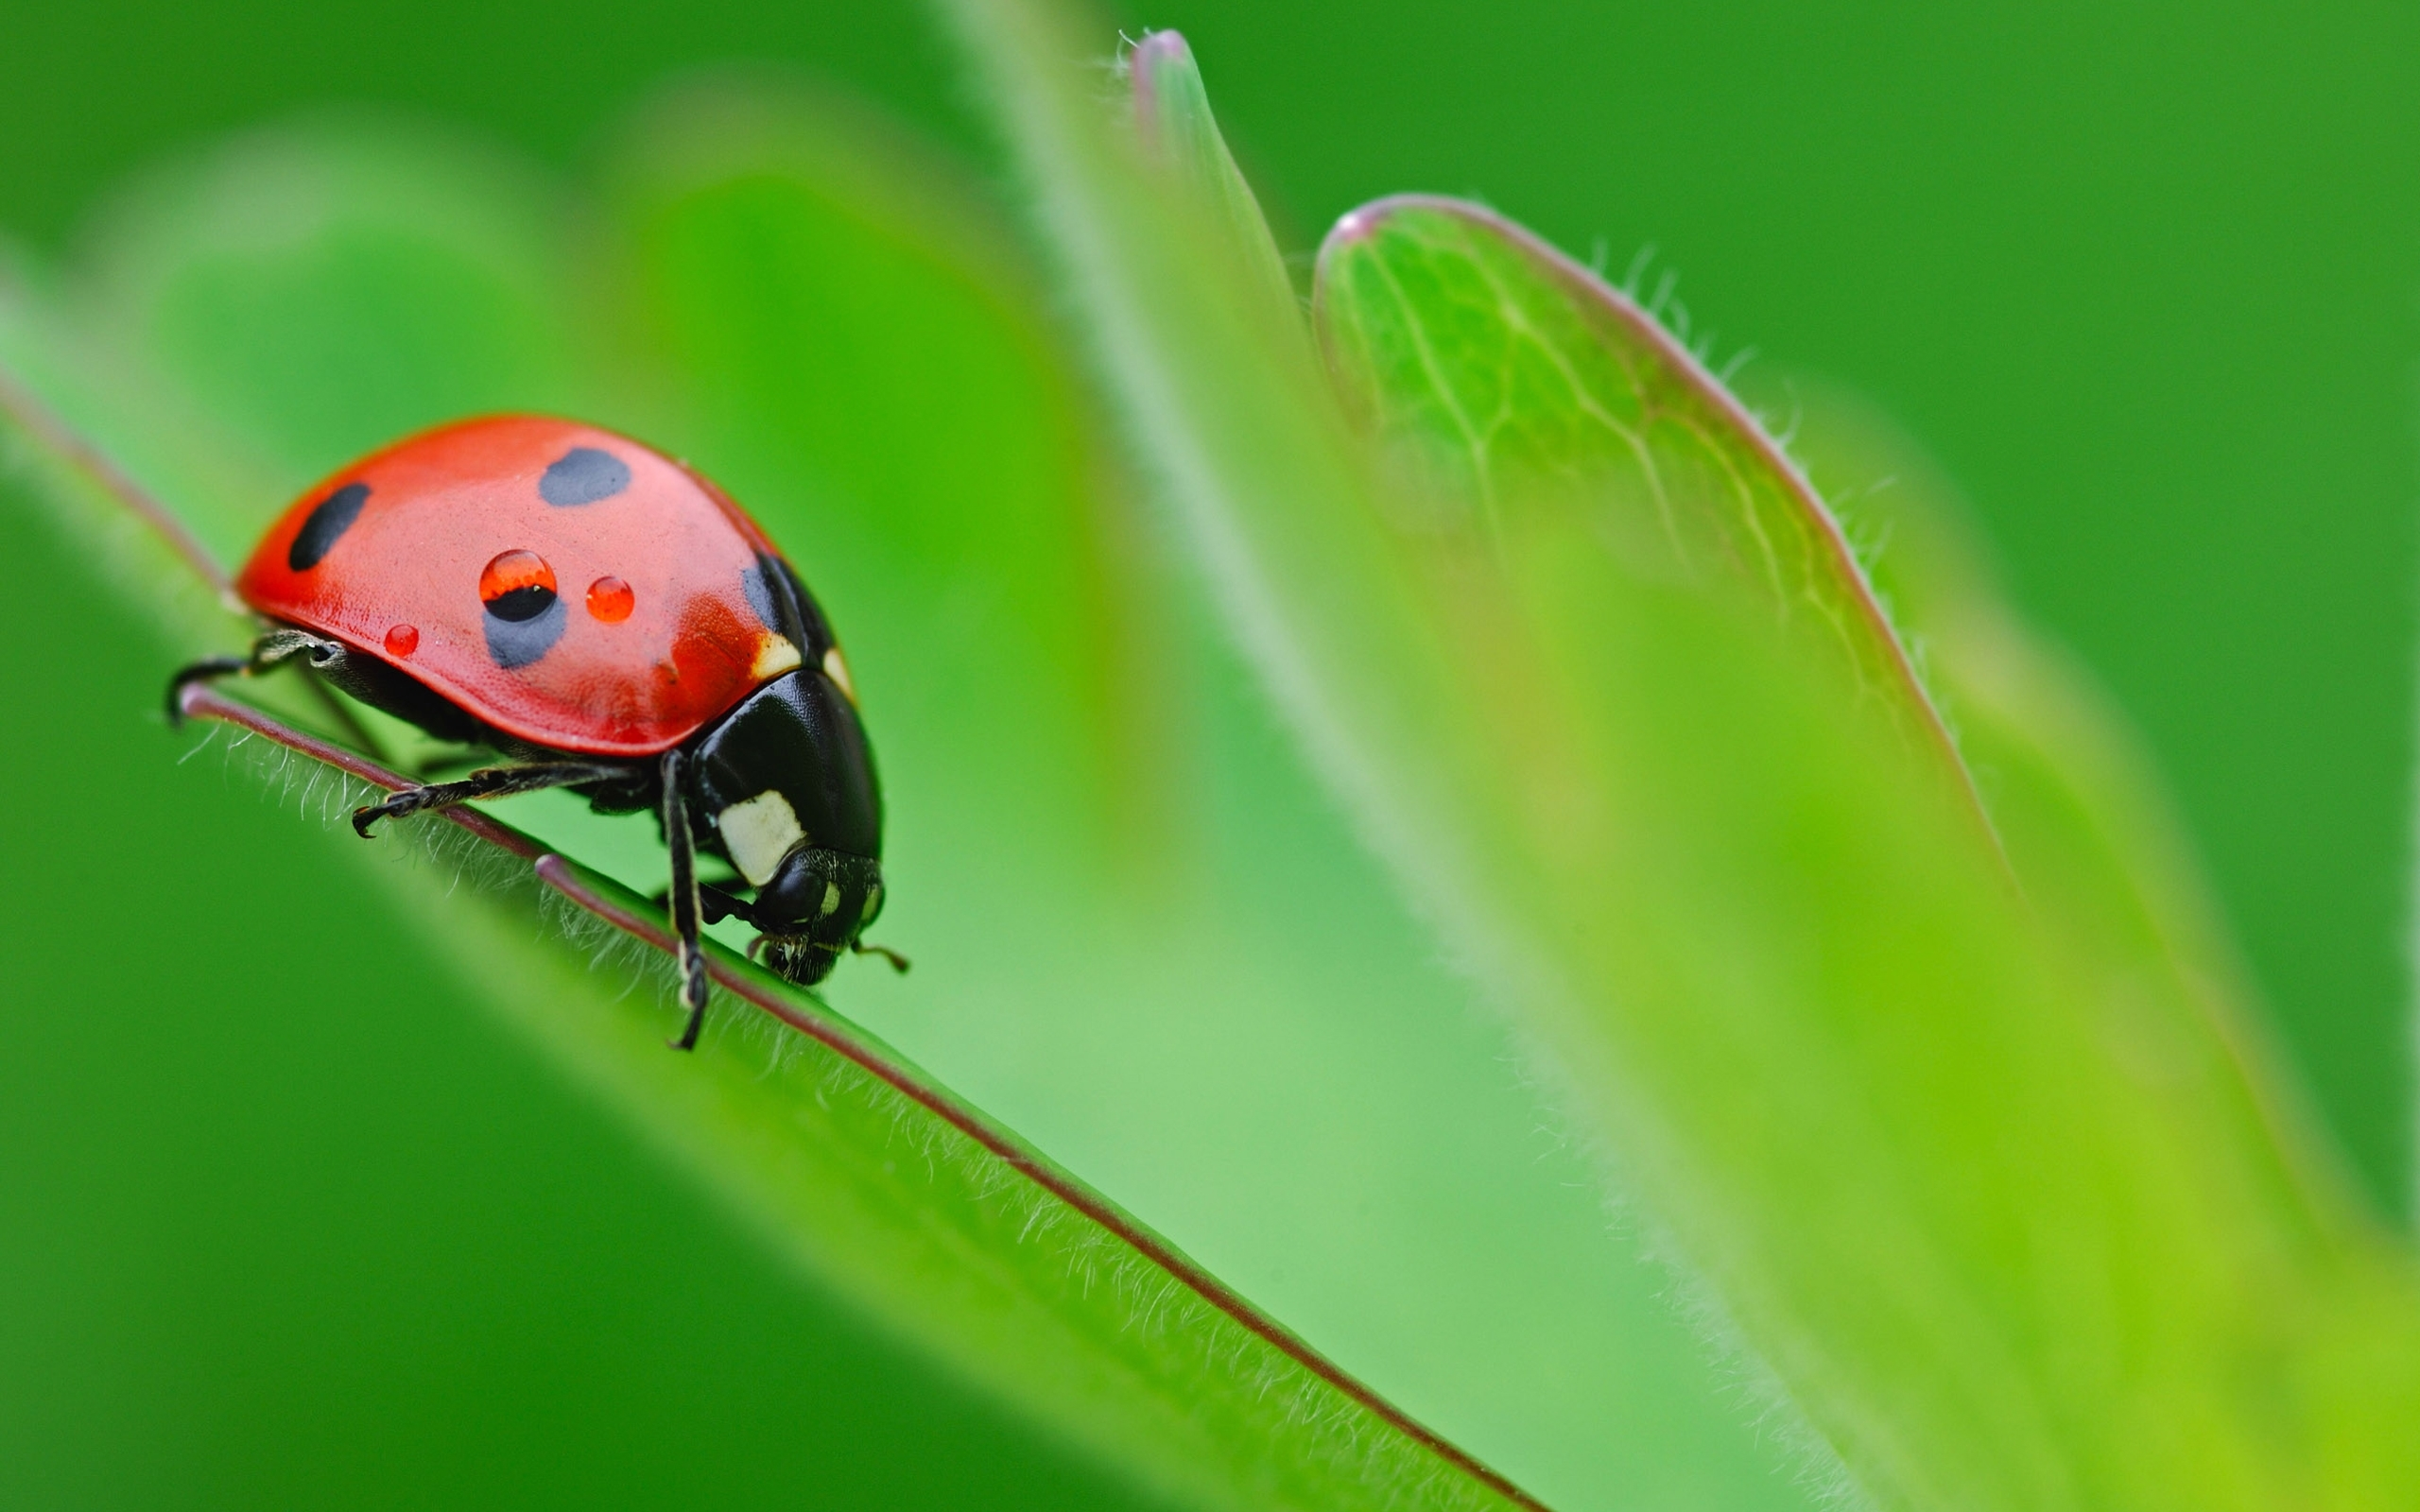 6514 download wallpaper Insects, Ladybugs screensavers and pictures for free